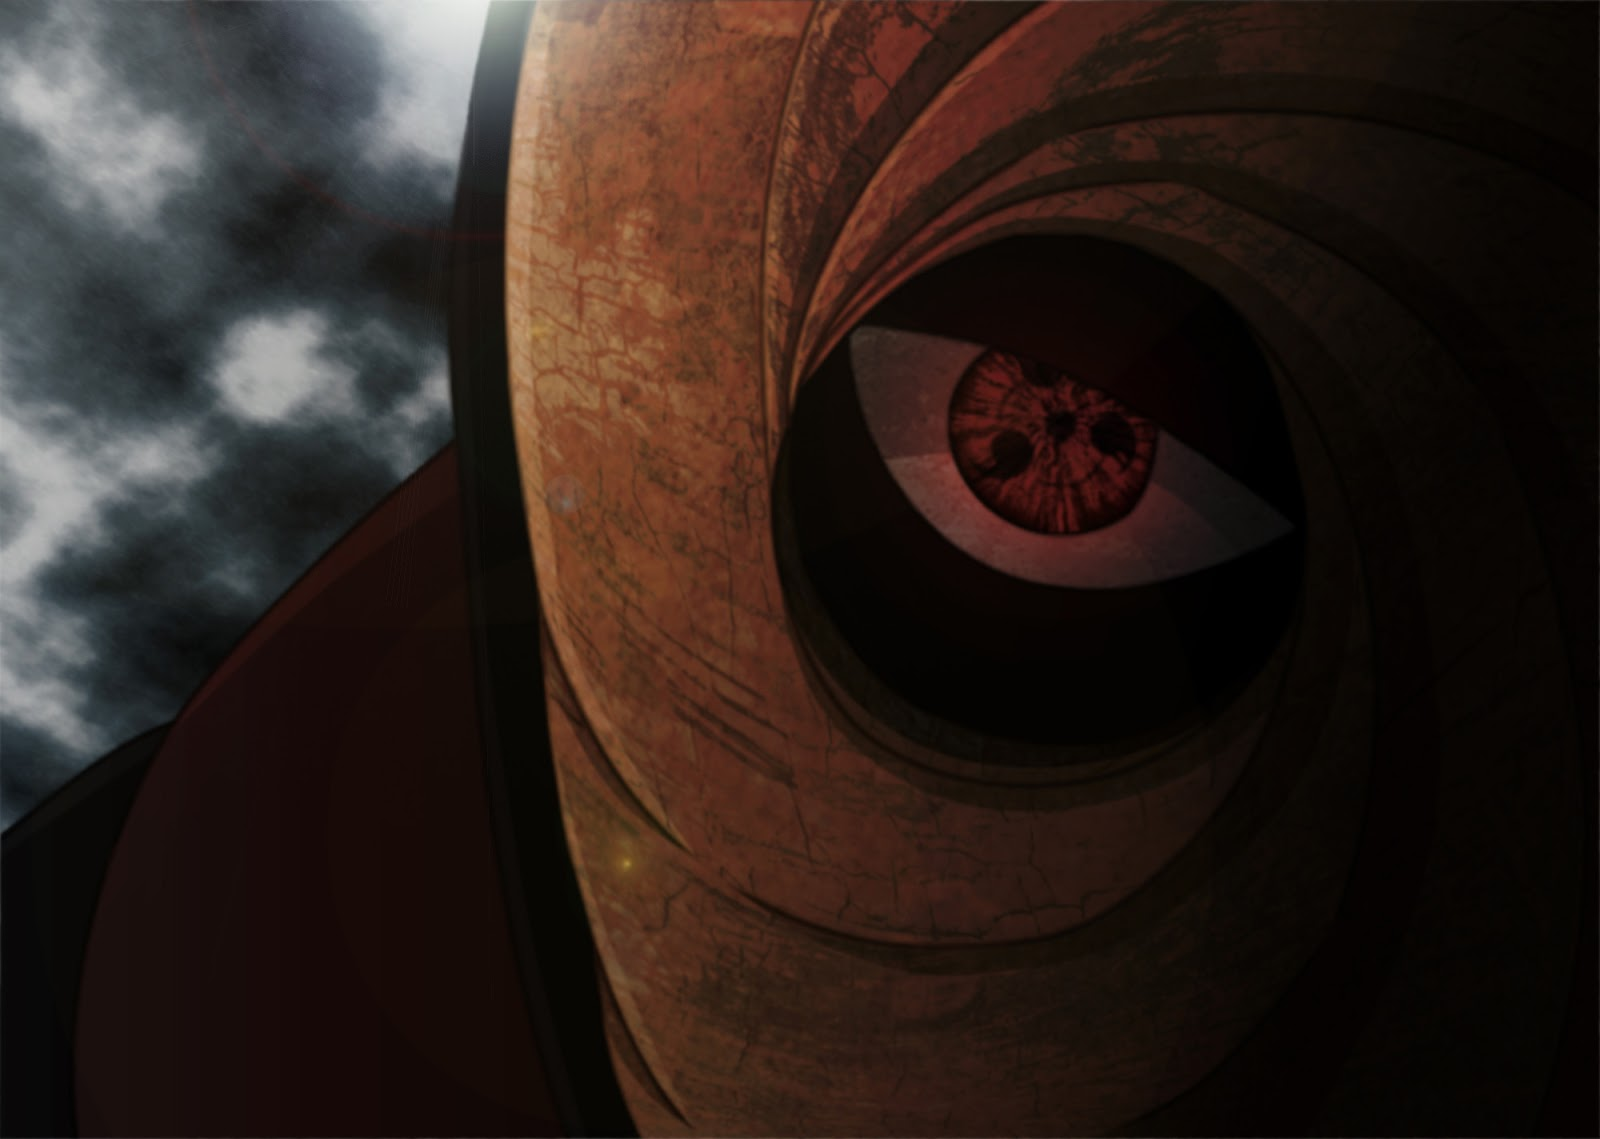 obito uchiha 3 wallpapers your daily anime wallpaper and